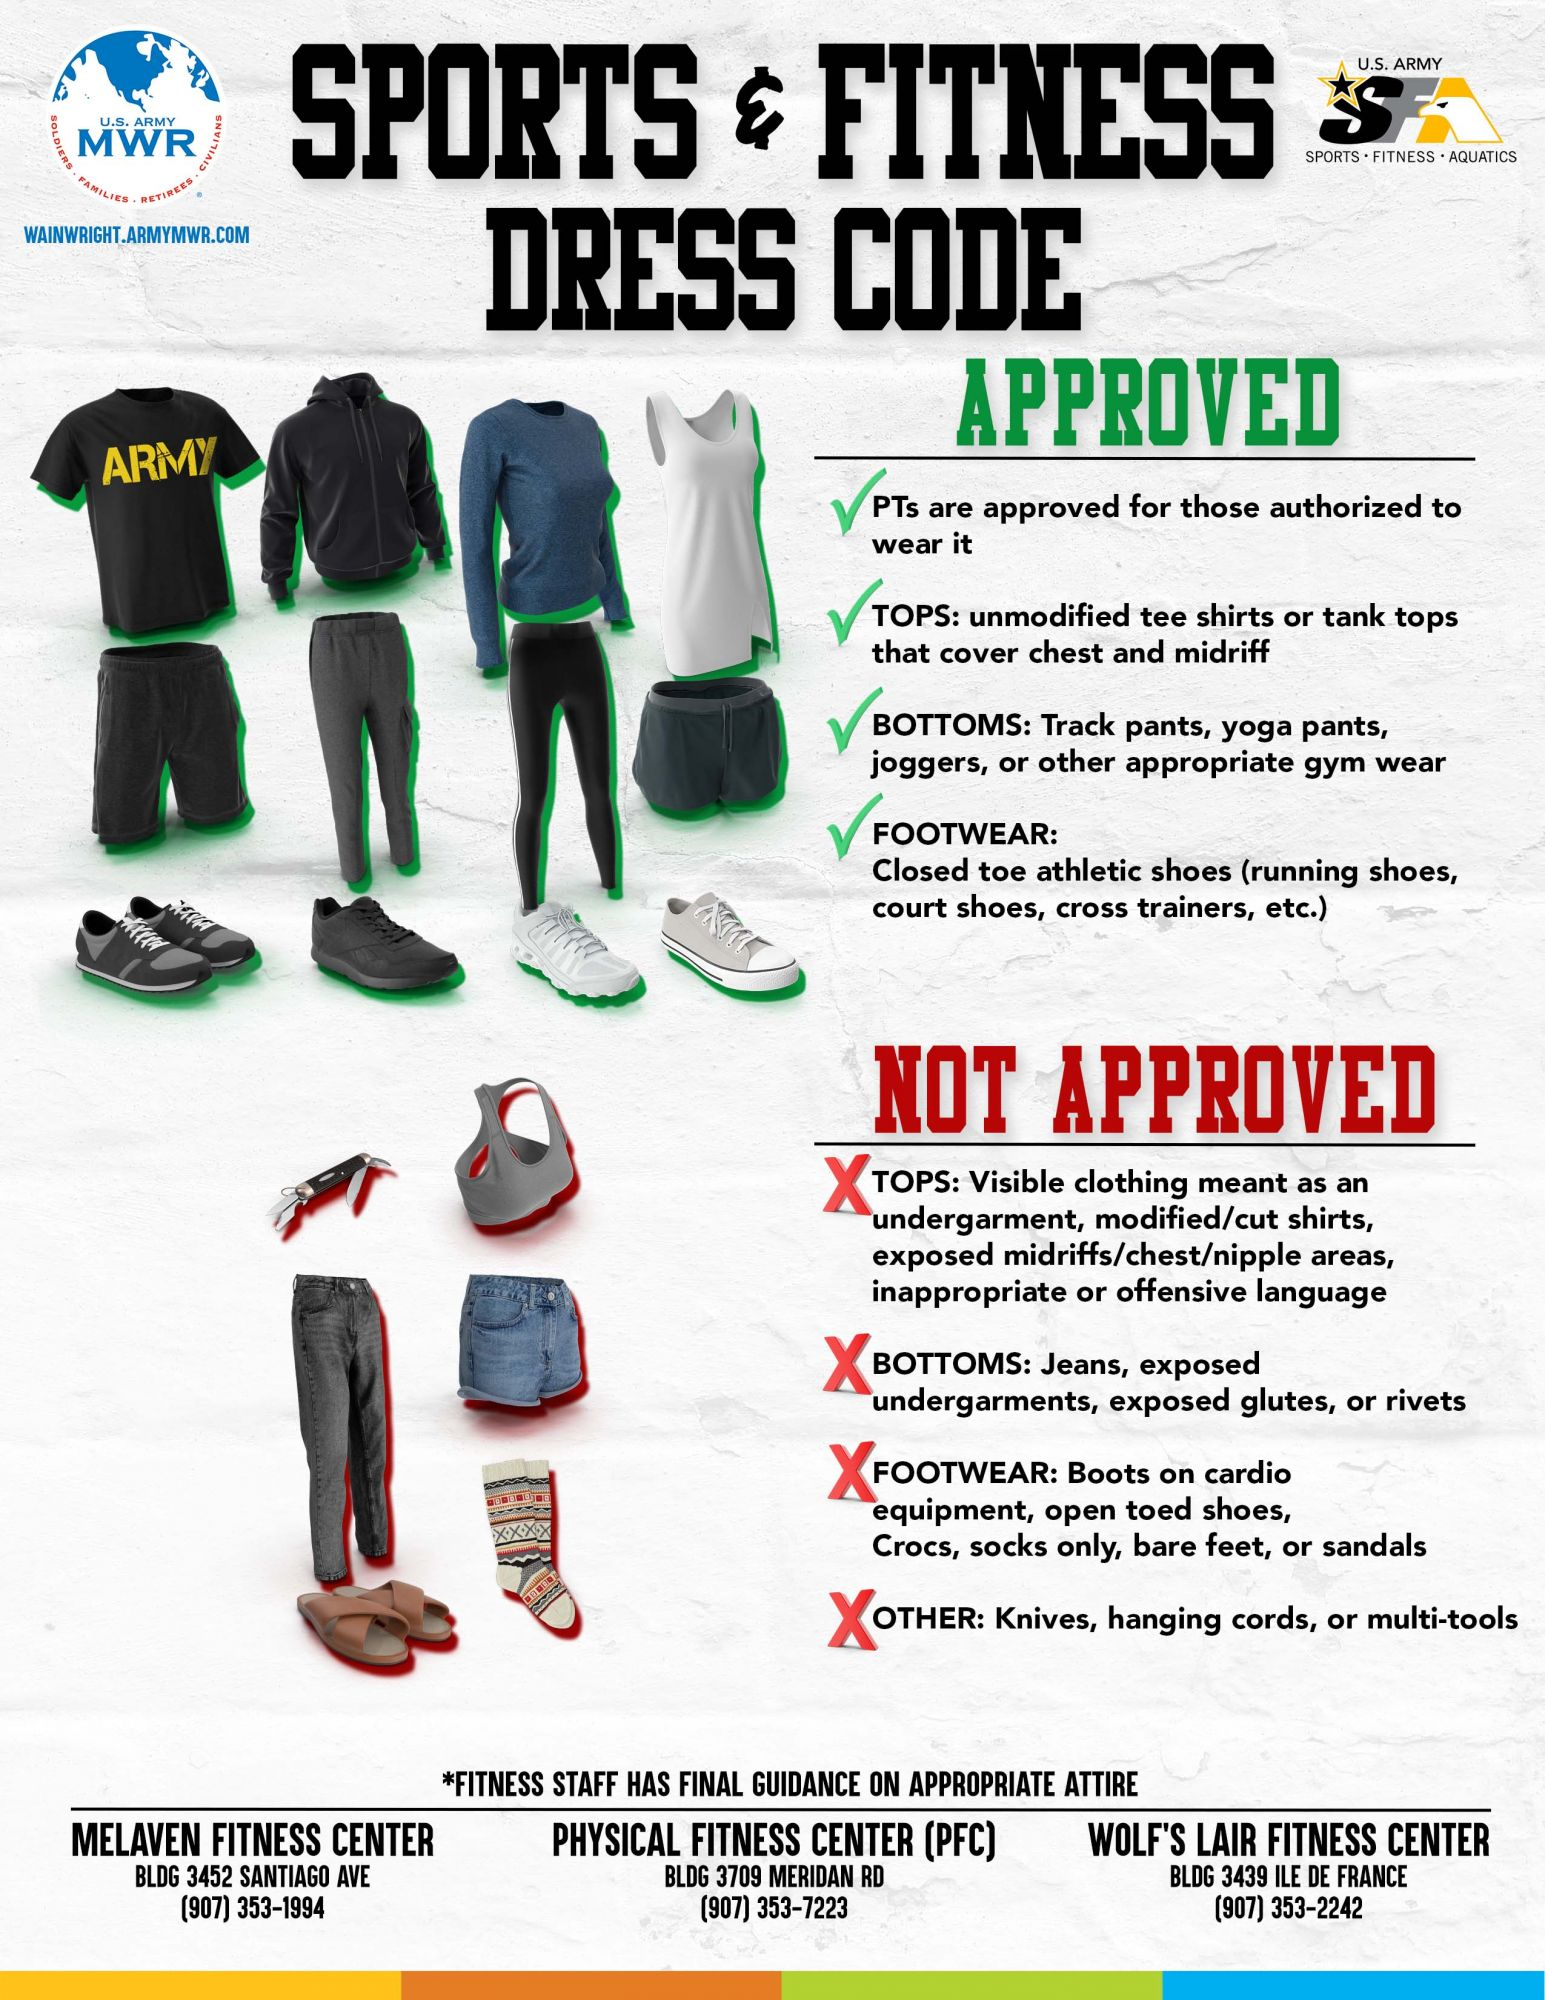 Wainwright_PFC_Dress Code_8.5x11_v2.jpg